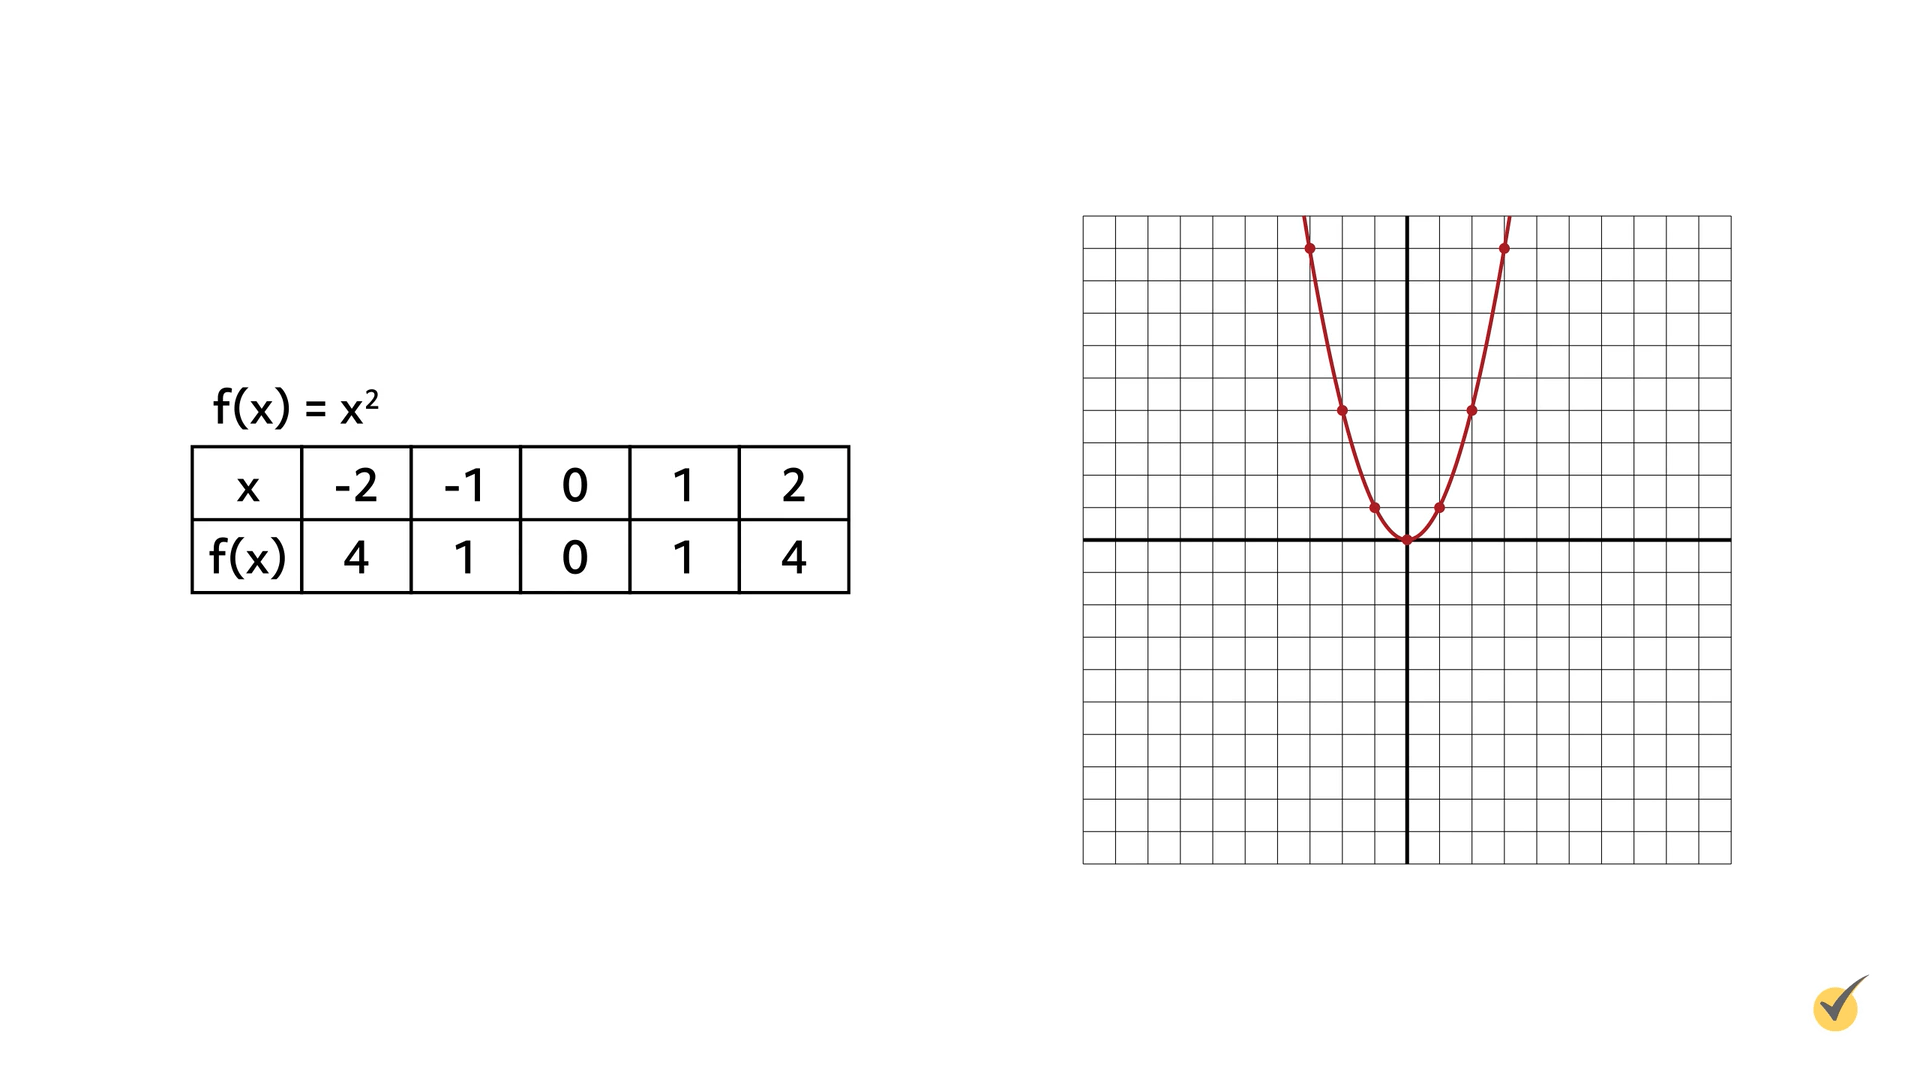 f(x) = x^2 shown on a graph.